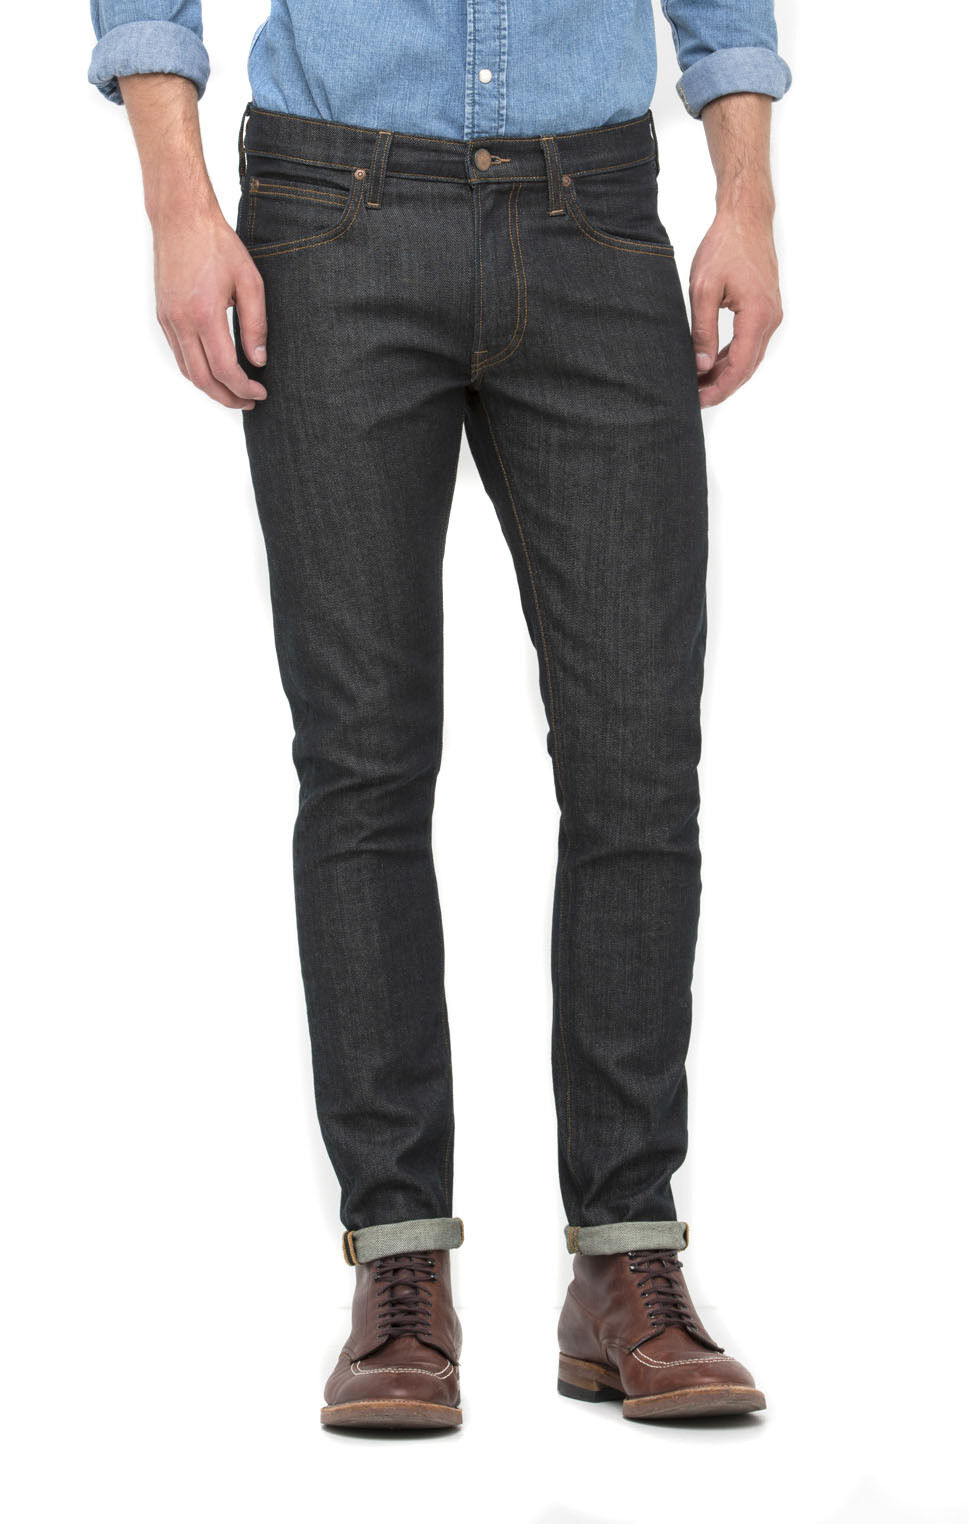 Lee Luke Slim Tapered Jeans Unwashed Rinse bluee Cause SALE RRP